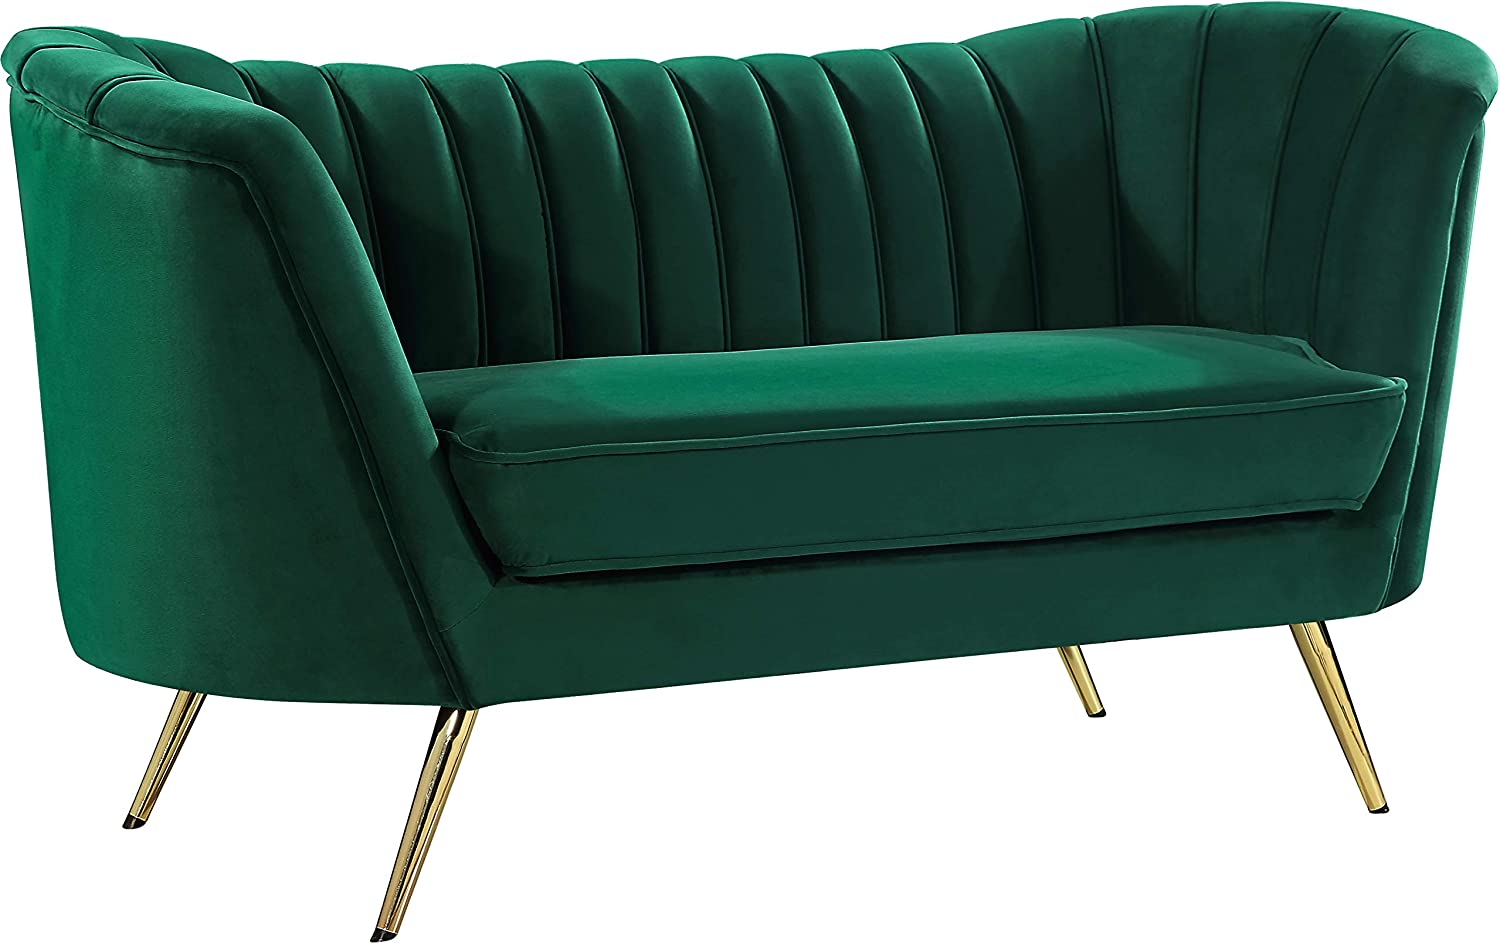 Meridian Furniture Margo Collection Modern   Contemporary Velvet Upholstered Loveseat with Deep Channel Tufting and Rich Gold Stainless Steel Legs, Green, 65